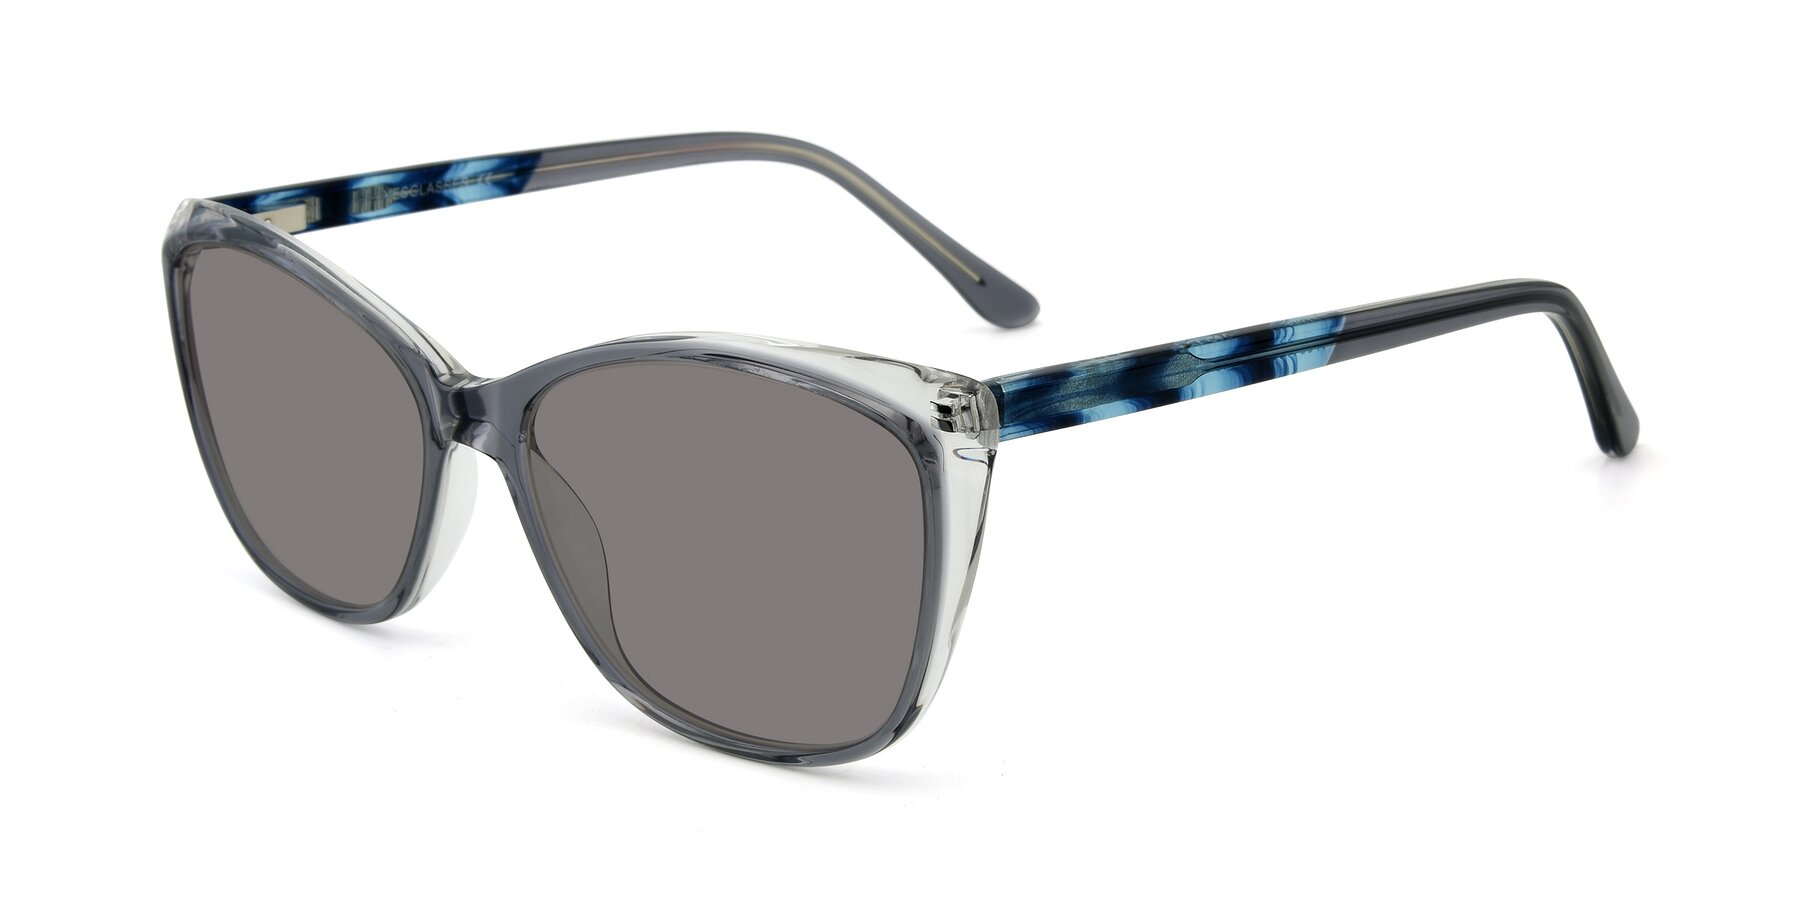 Angle of 17384 in Transparent Grey with Medium Gray Tinted Lenses